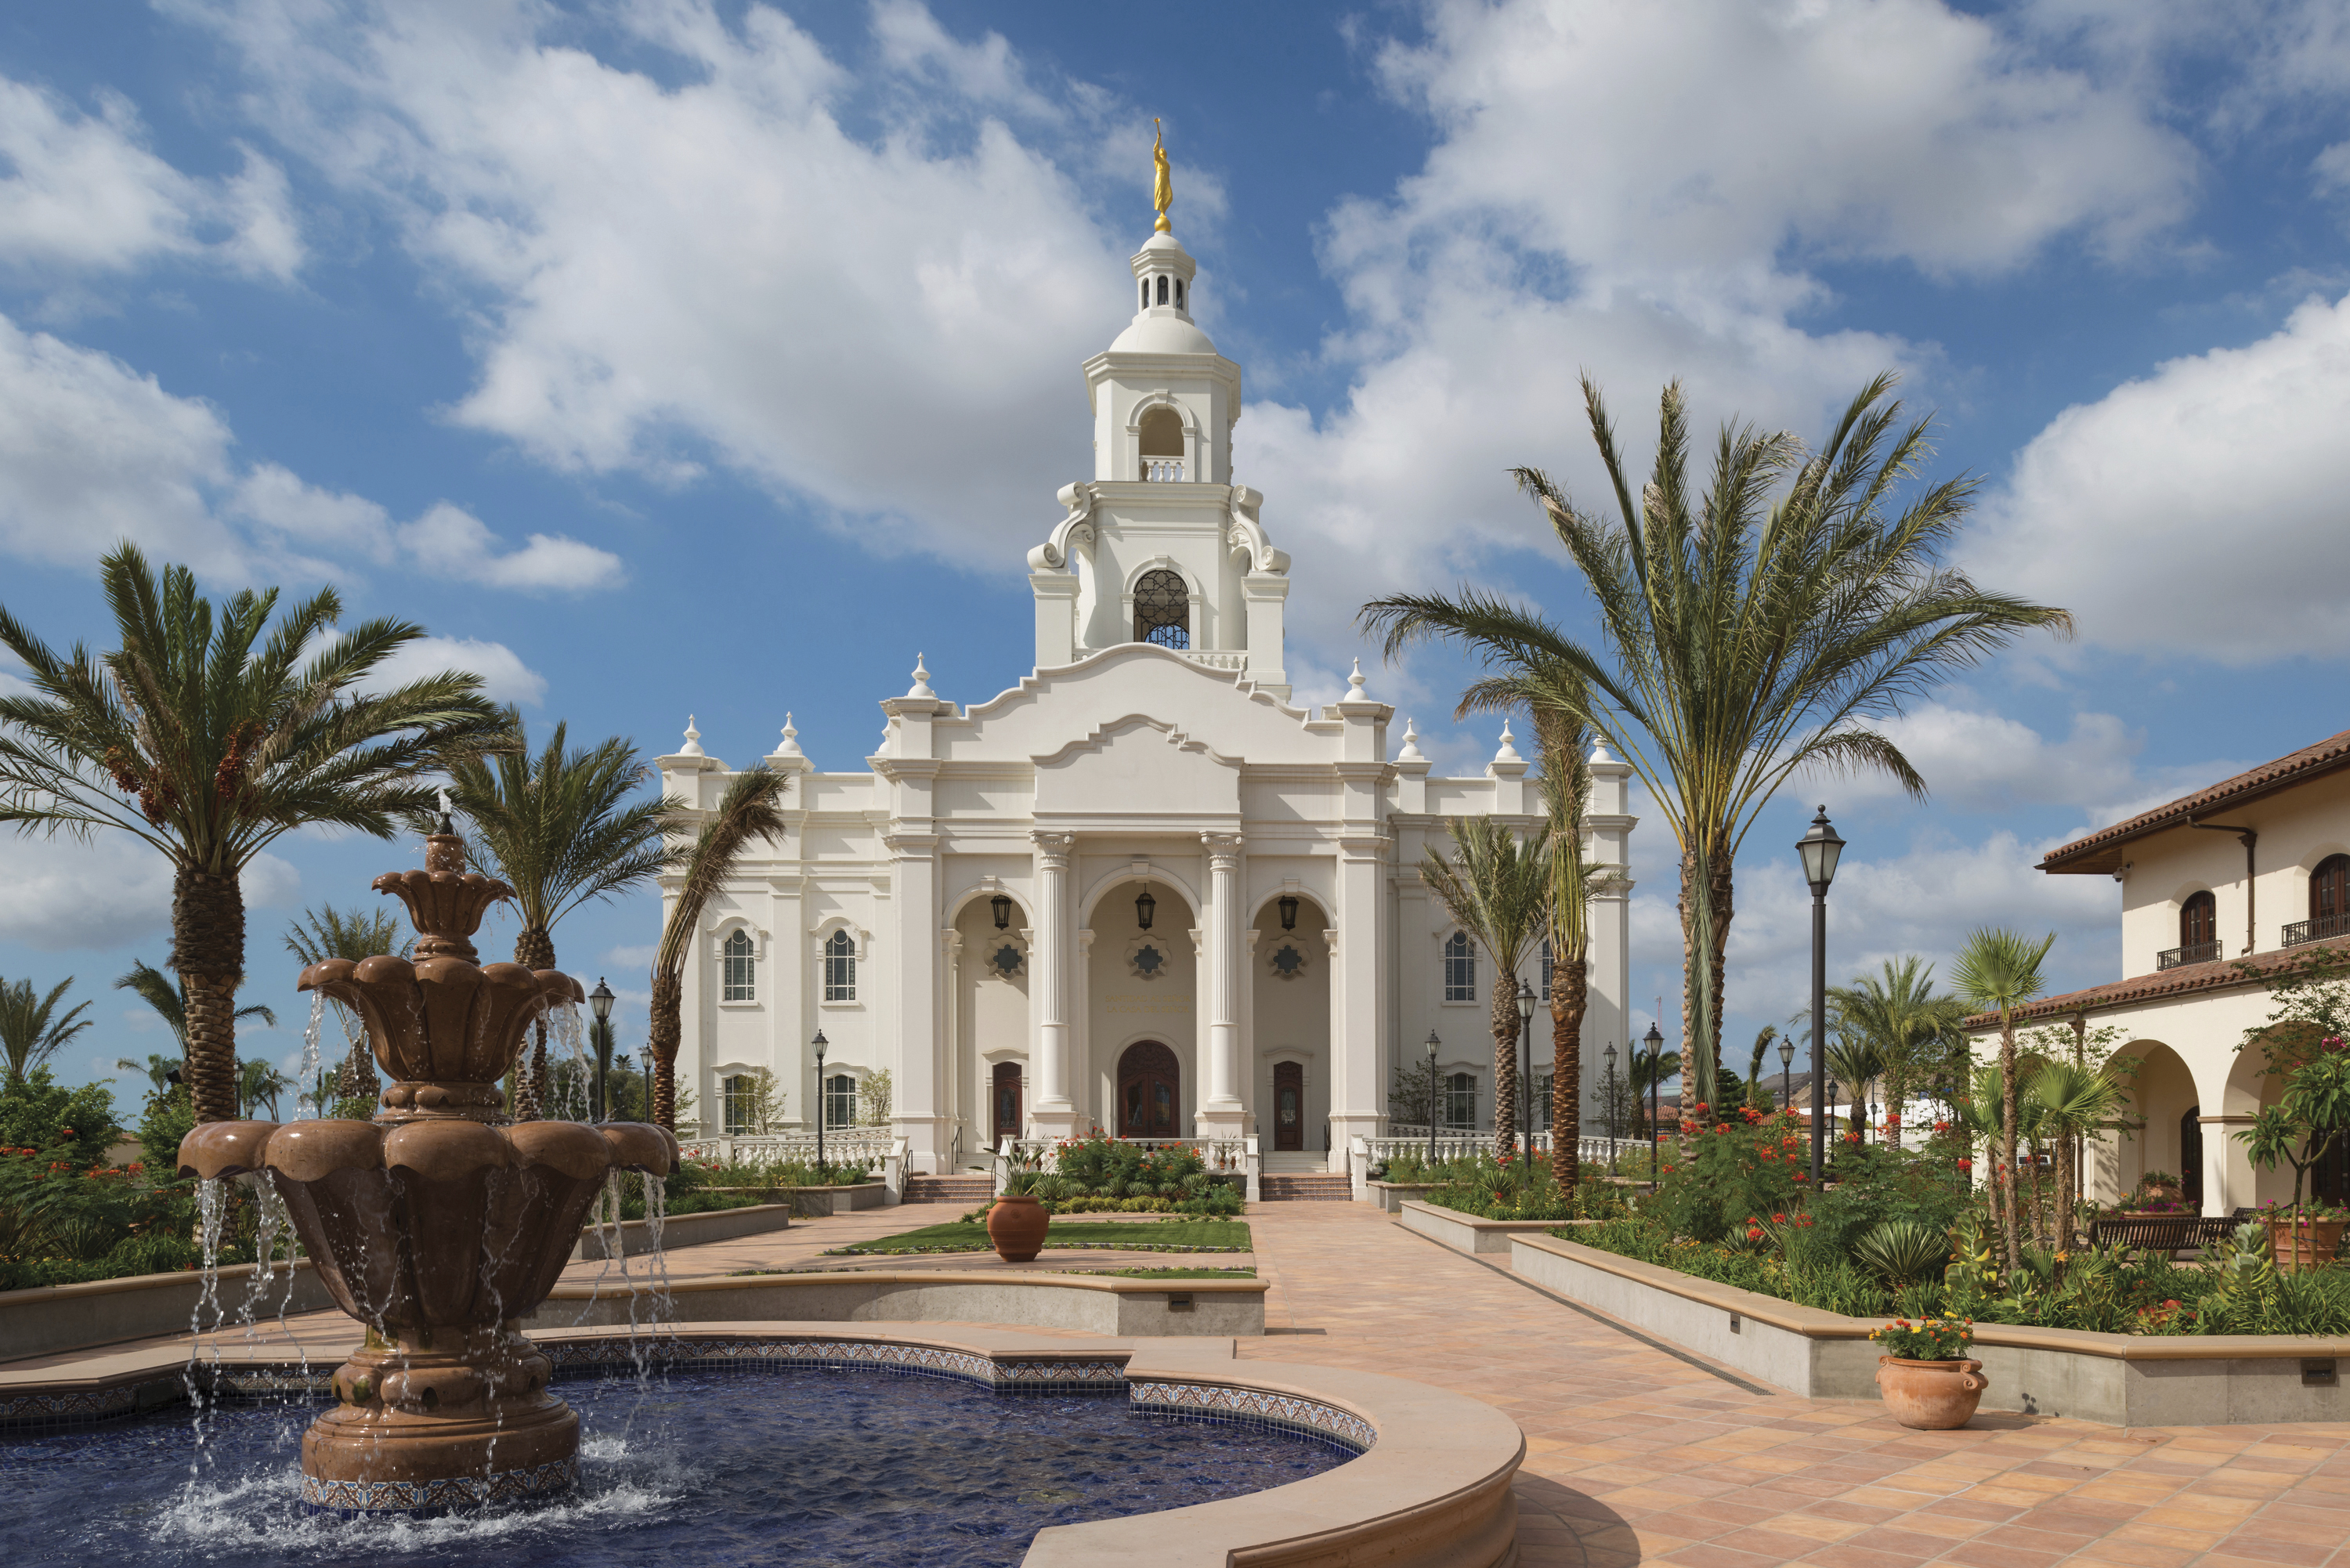 A fountain in front of the Tijuana Mexico Temple.